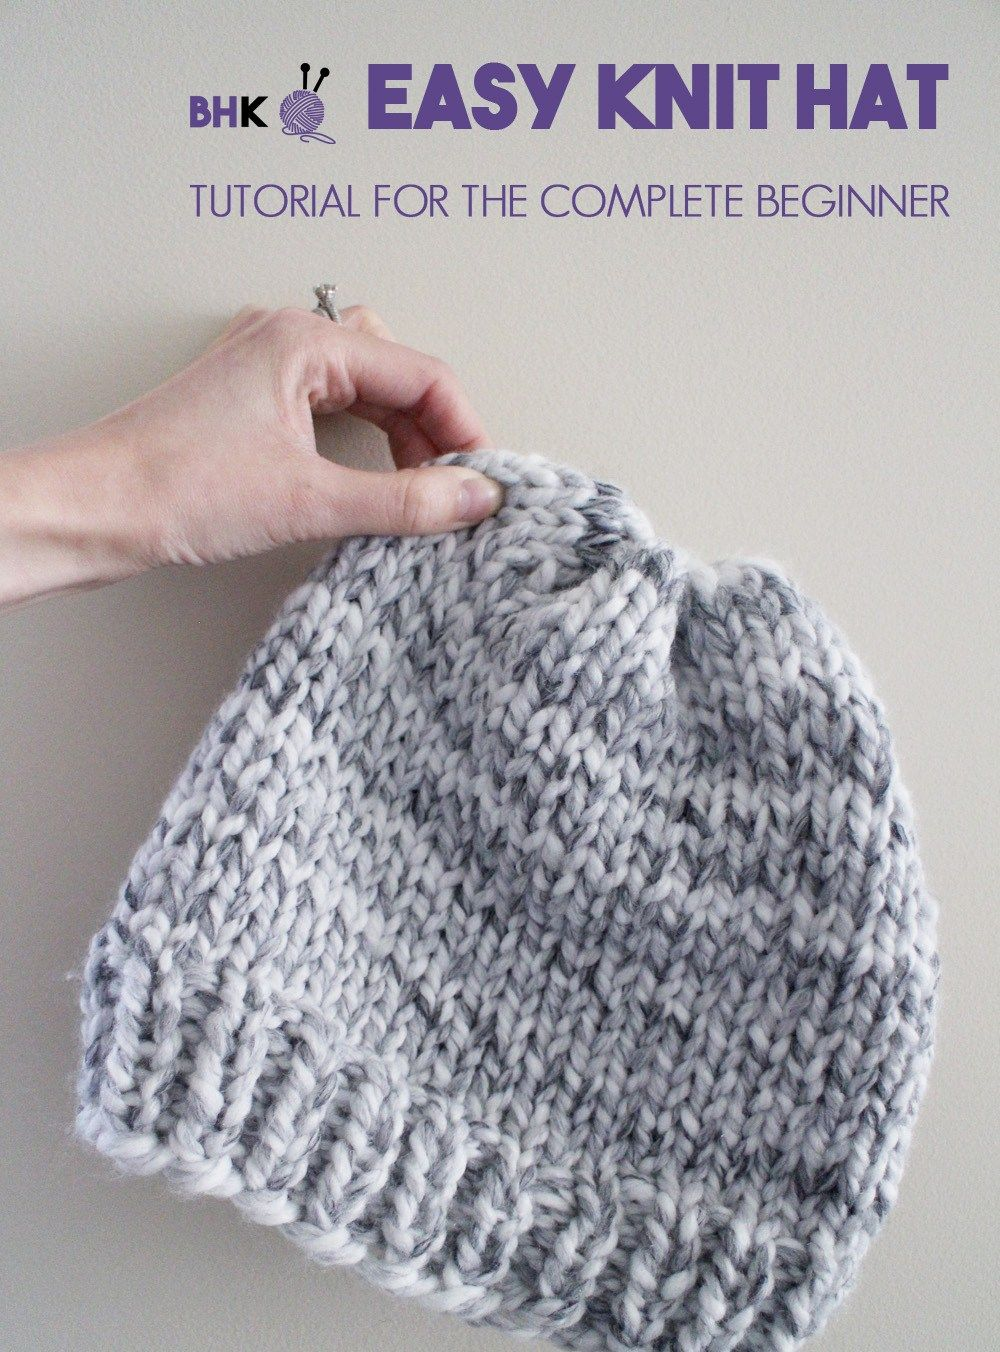 Easy Knit Hat How To Knit A Hat For Complete Beginners Easy Knit Hat Knit Hat Pattern Easy Knitting Patterns Free Hats